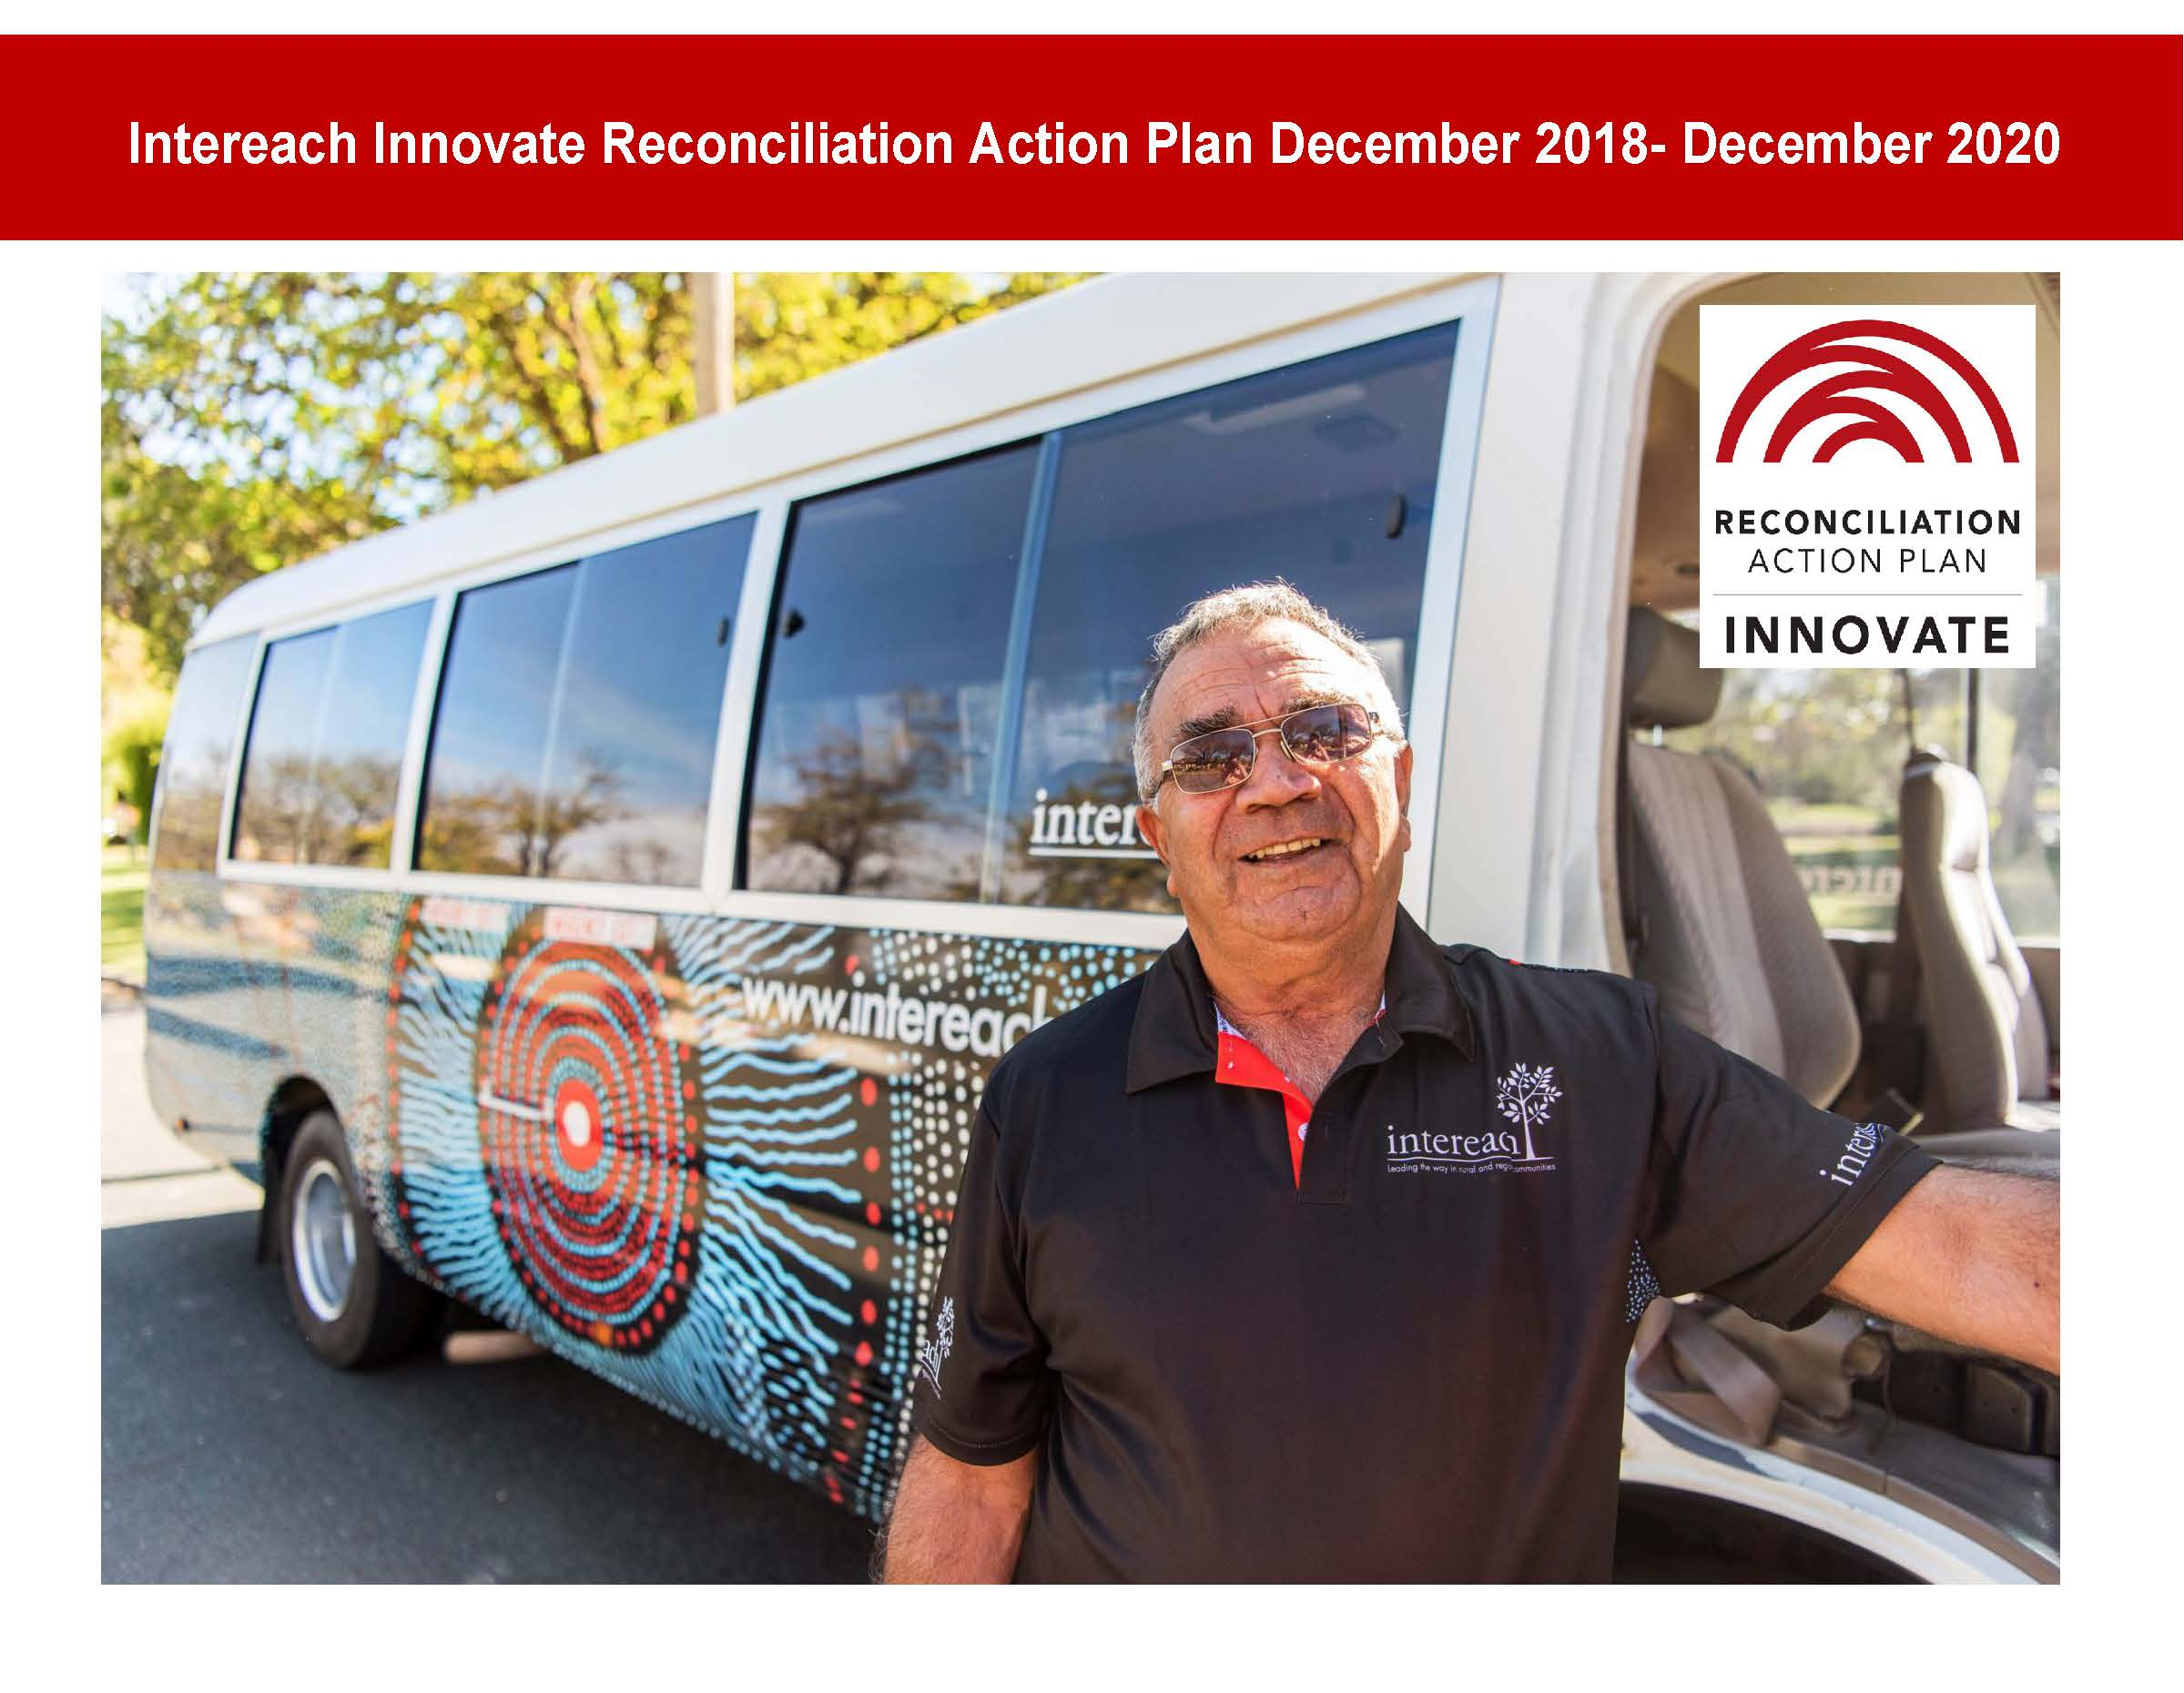 Intereach's Innovate Reconciliation Action Plan